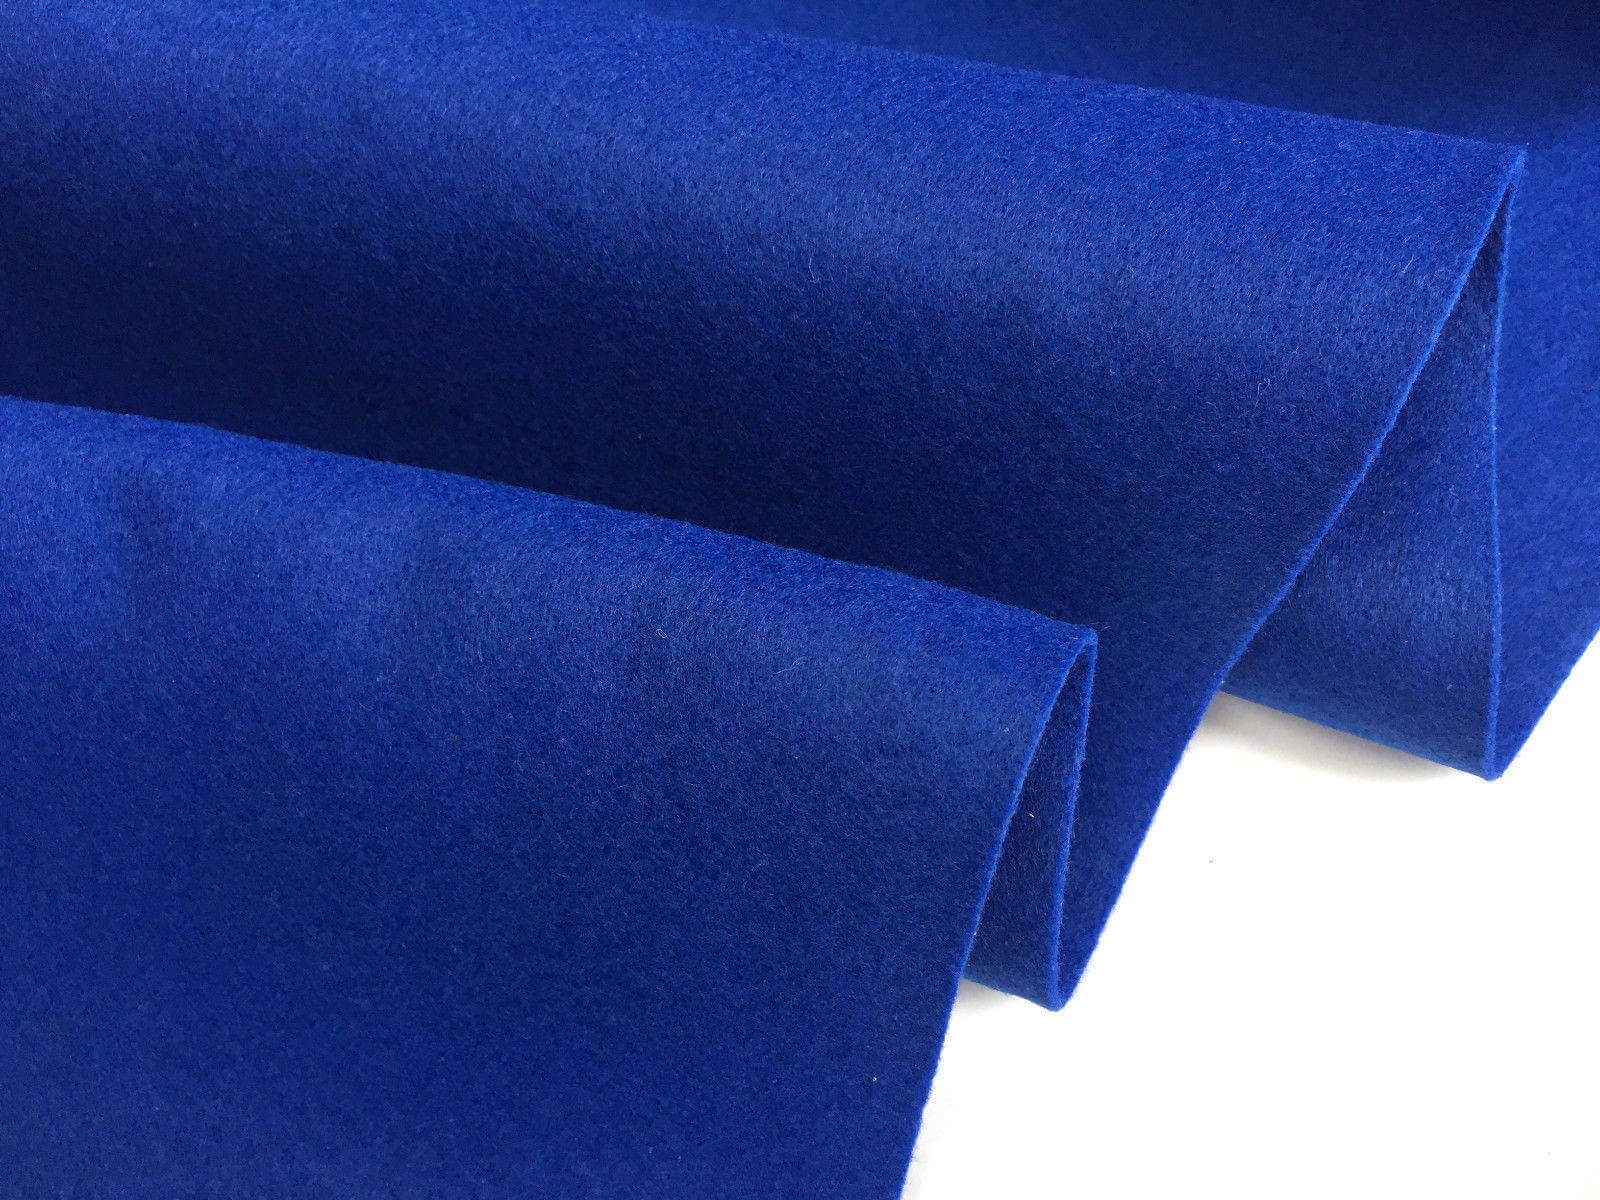 felt-fabric-material-craft-plain-colours-polyester-102cm-wide-royal-blue-5ace644a1.jpg